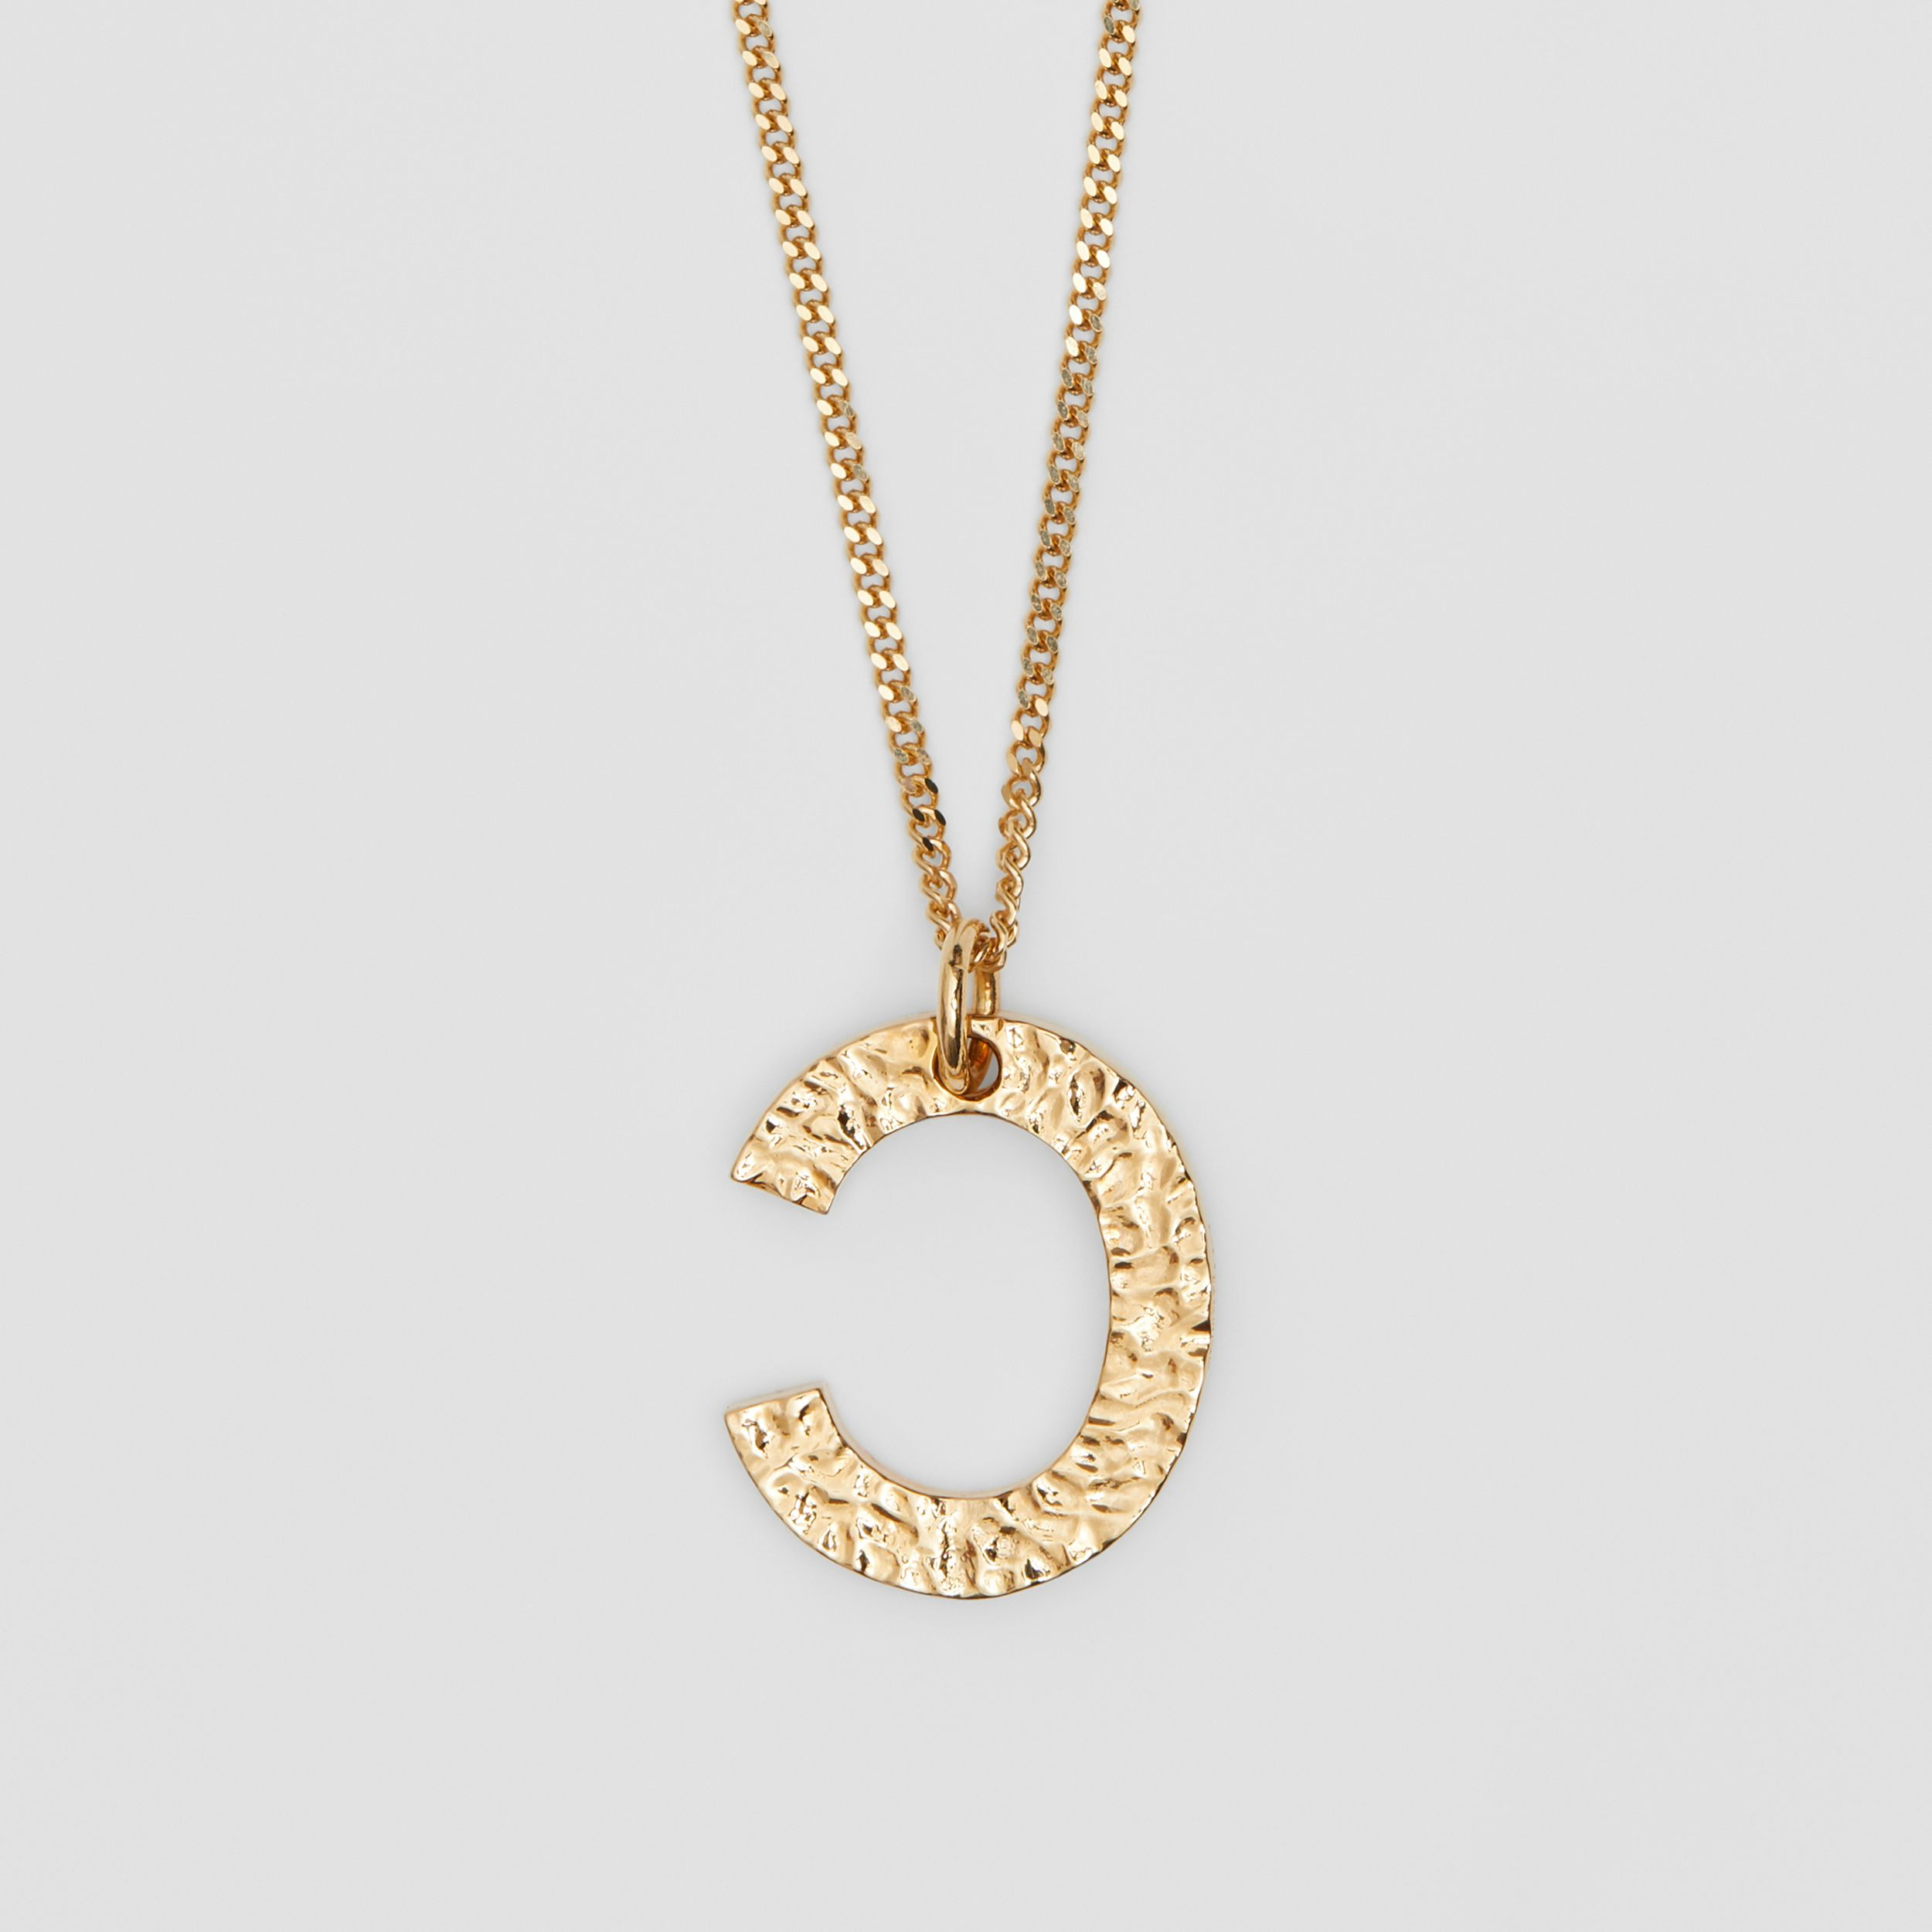 'C' Alphabet Charm Gold-plated Necklace in Light - Women | Burberry - 3